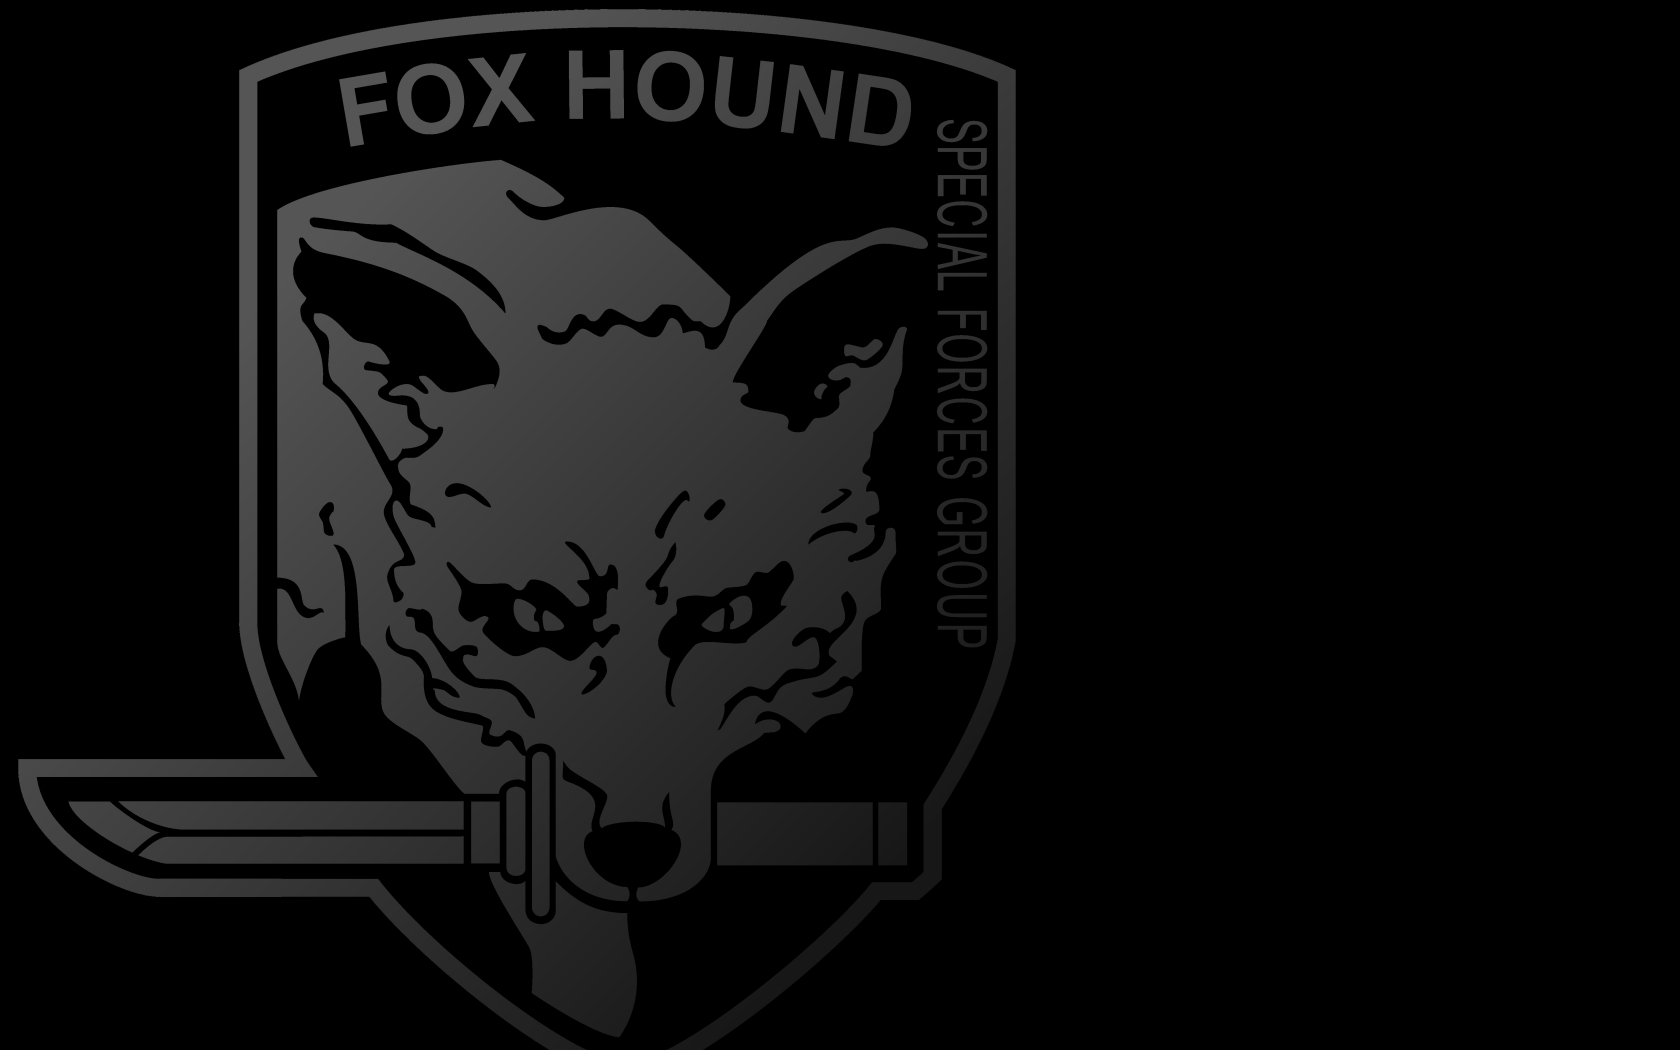 Image 16796 metal gear the assassin 39 s creed - Foxhound metal gear wallpaper ...